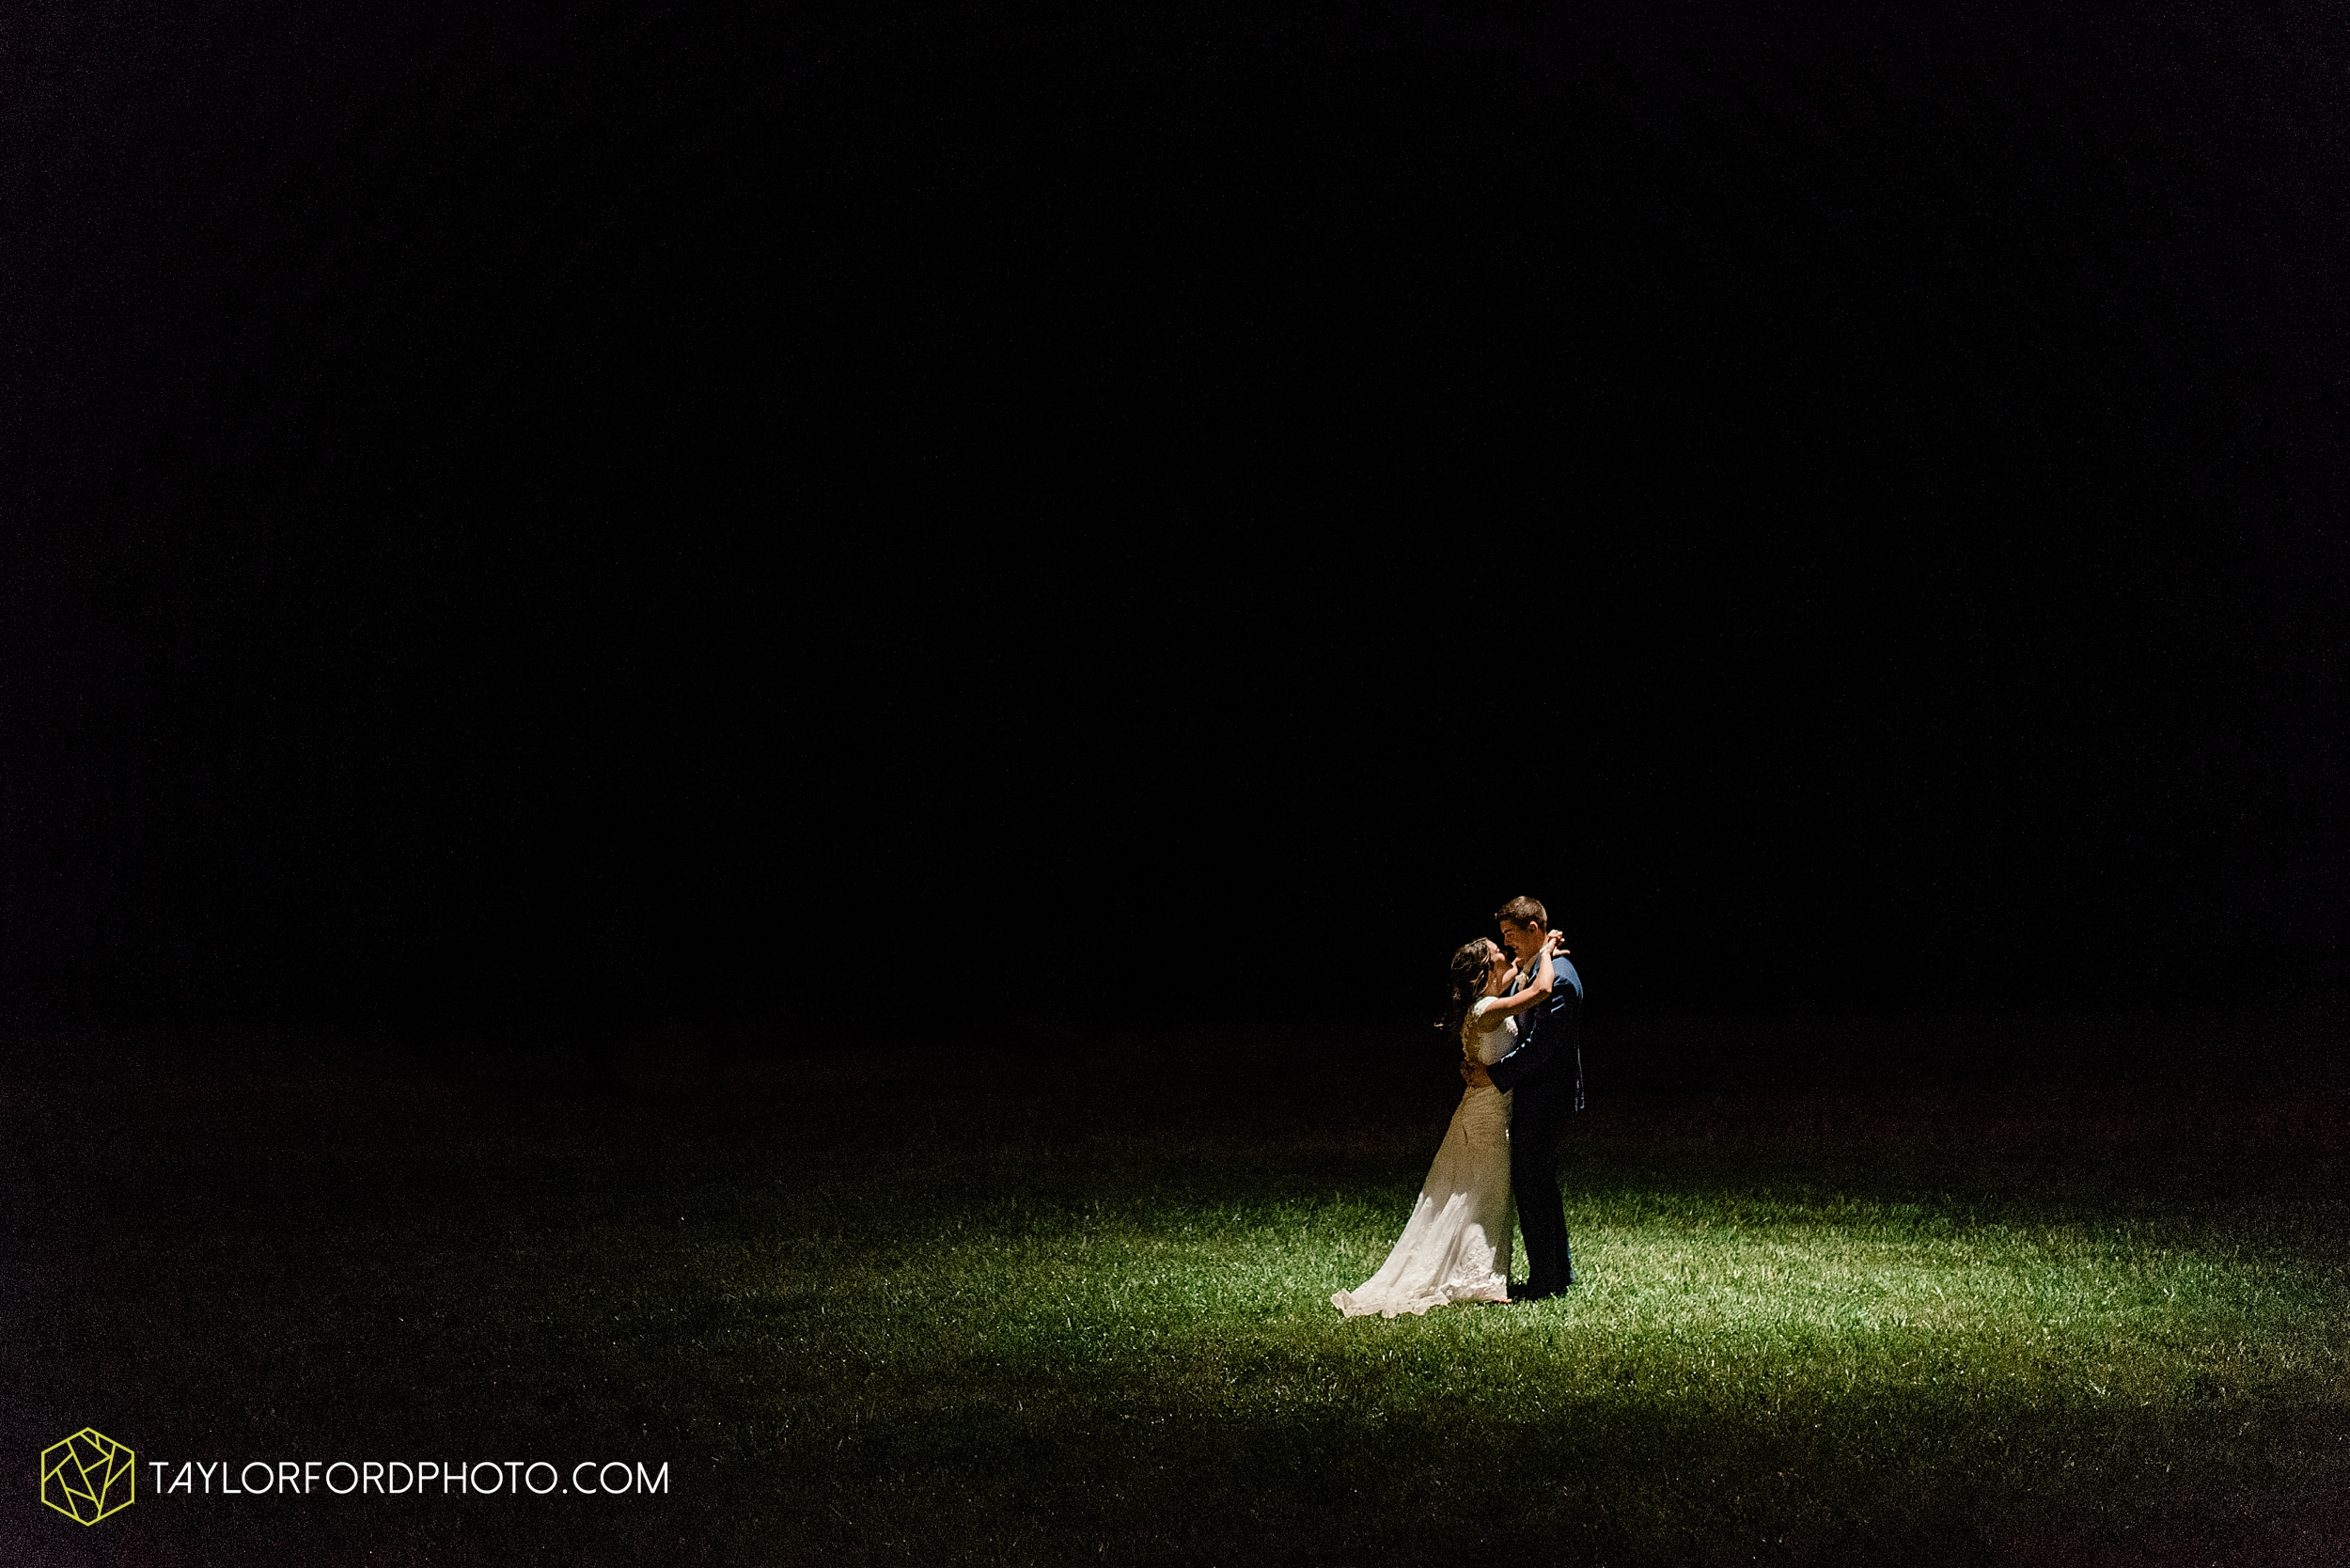 kacee-haden-sholl-second-story-saint-marys-knights-of-columbus-defiance-ohio-wedding-photographer-taylor-ford-photography_0208.jpg